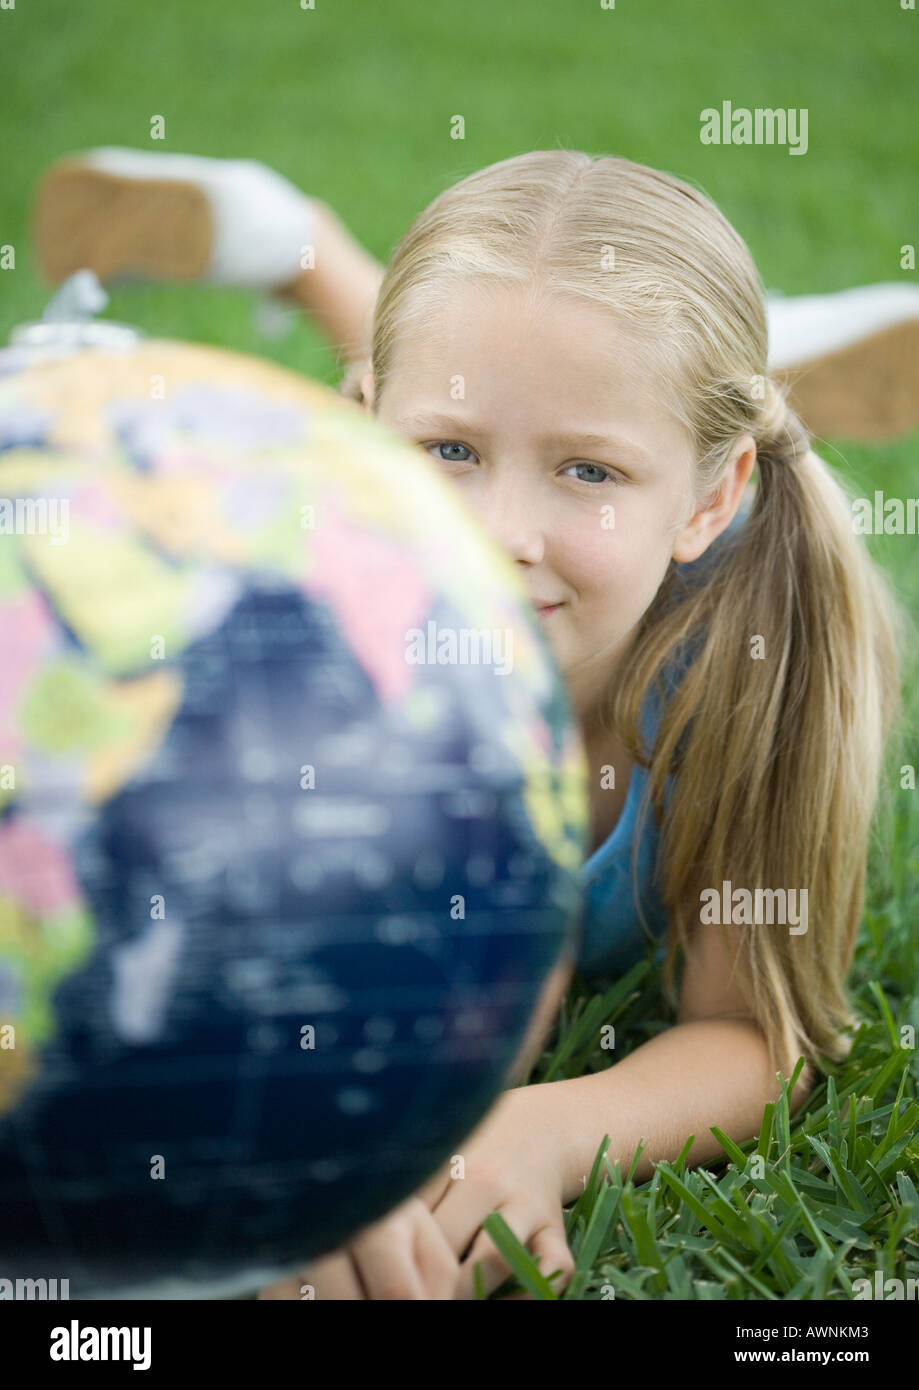 Girl lying on grass, globe in foreground - Stock Image